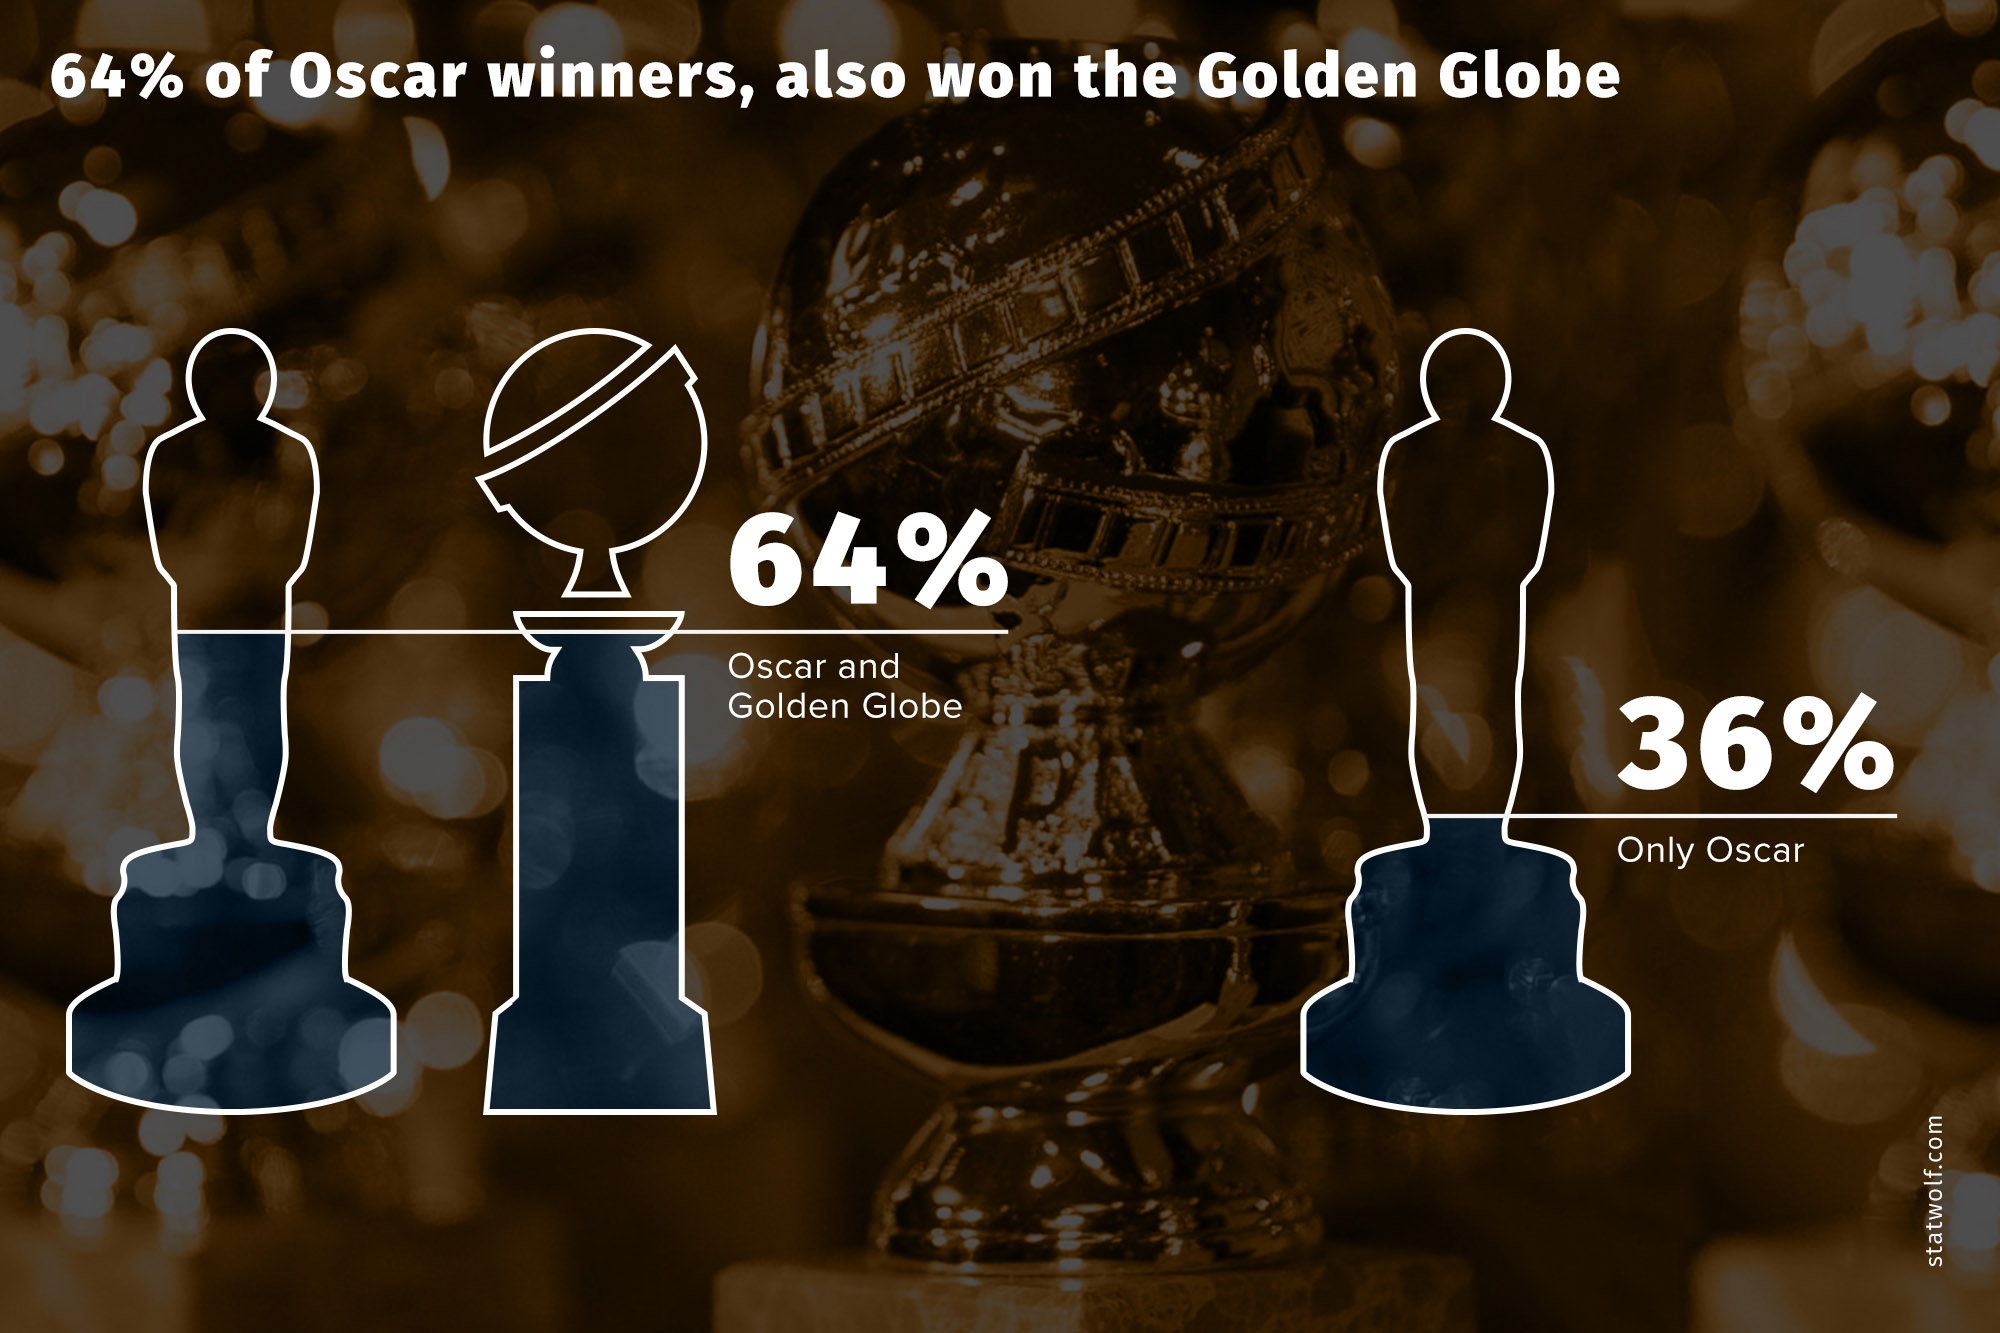 64% Of Oscar Winner, Also Won The Golden Globe